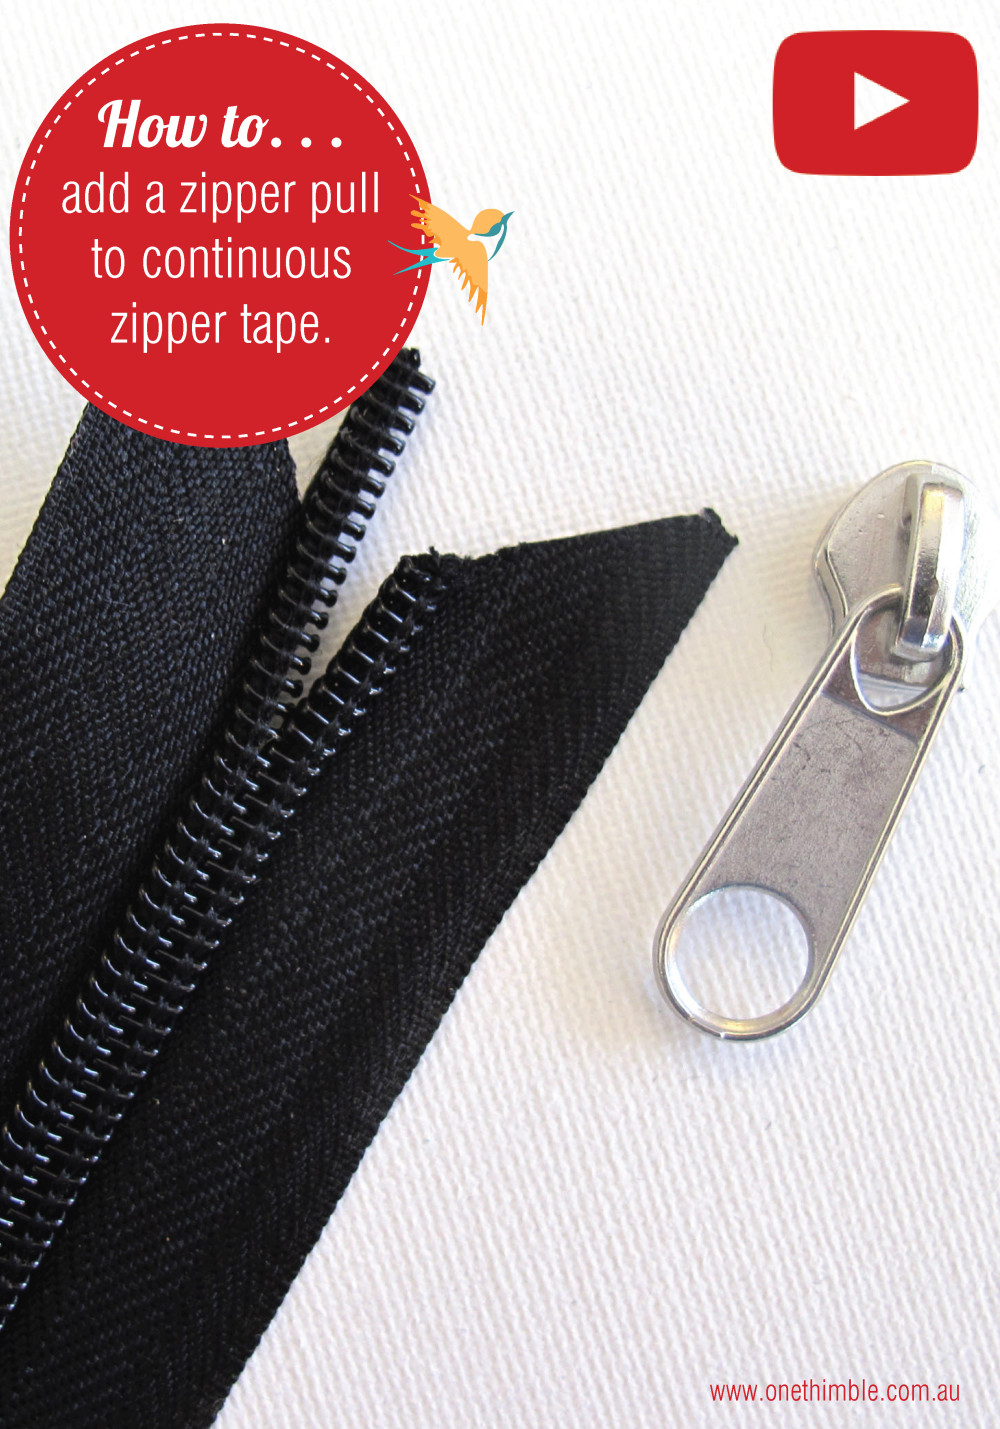 how to add a zipper pull to continuous zipper tape